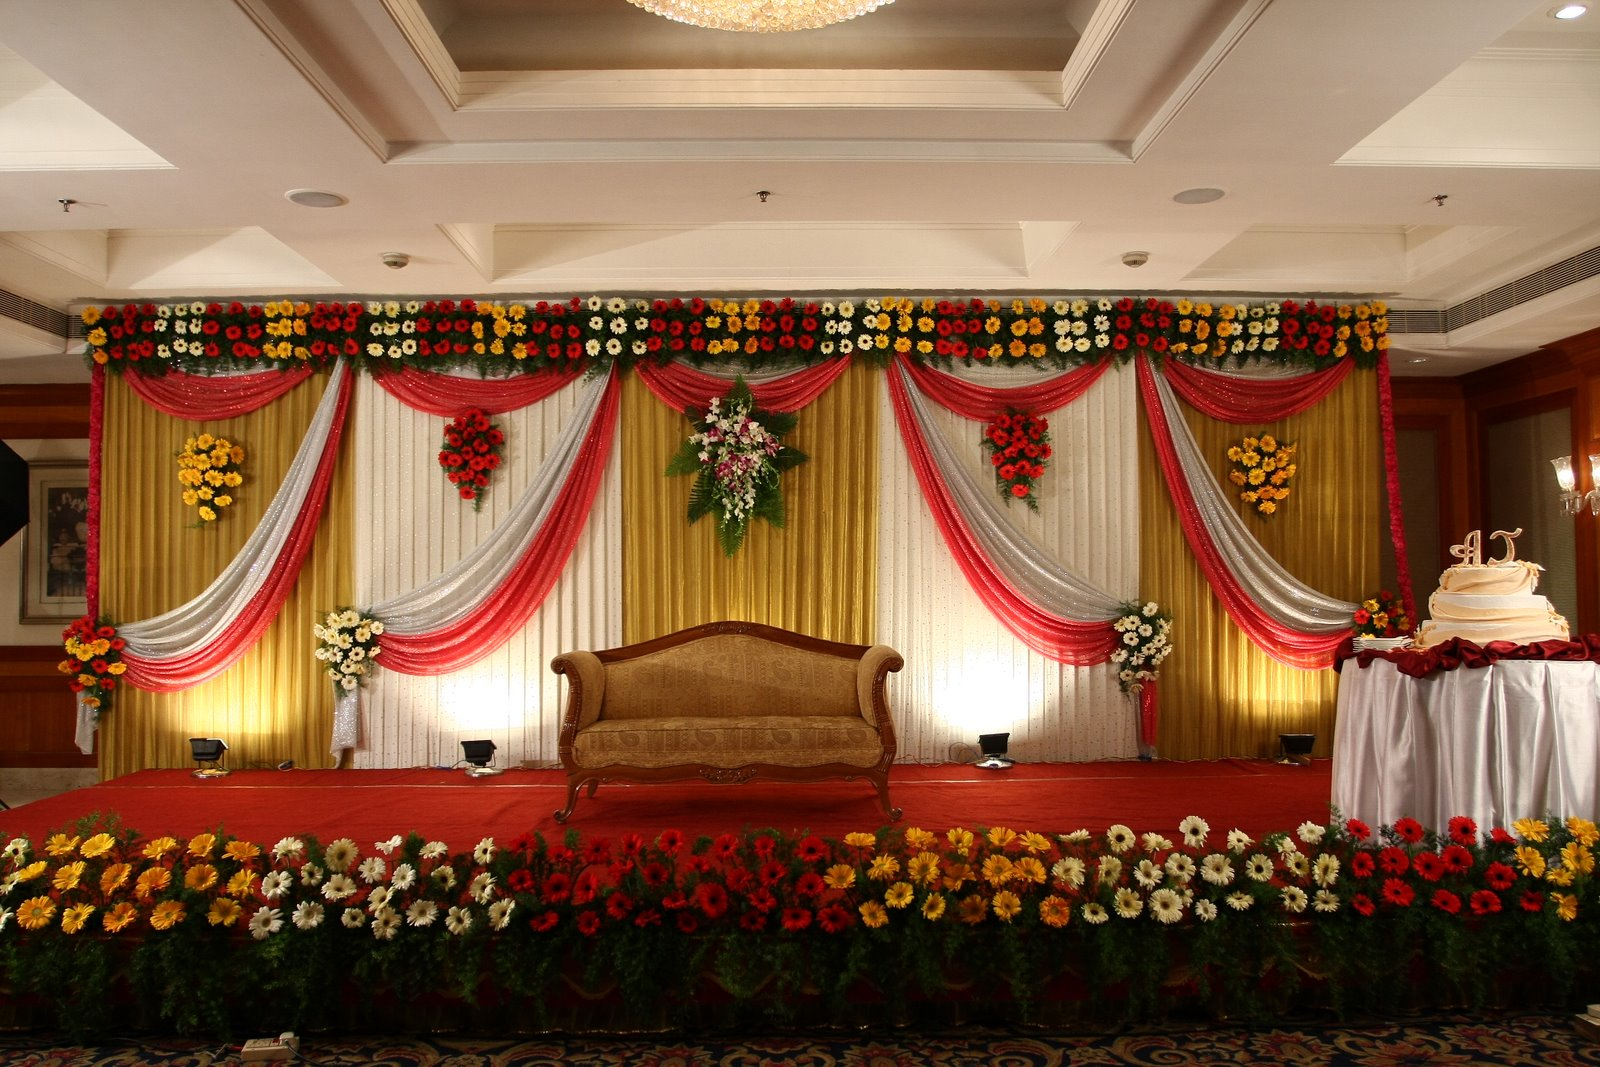 About marriage marriage decoration photos 2013 marriage stage decoration ideas 2014 Latest decoration ideas